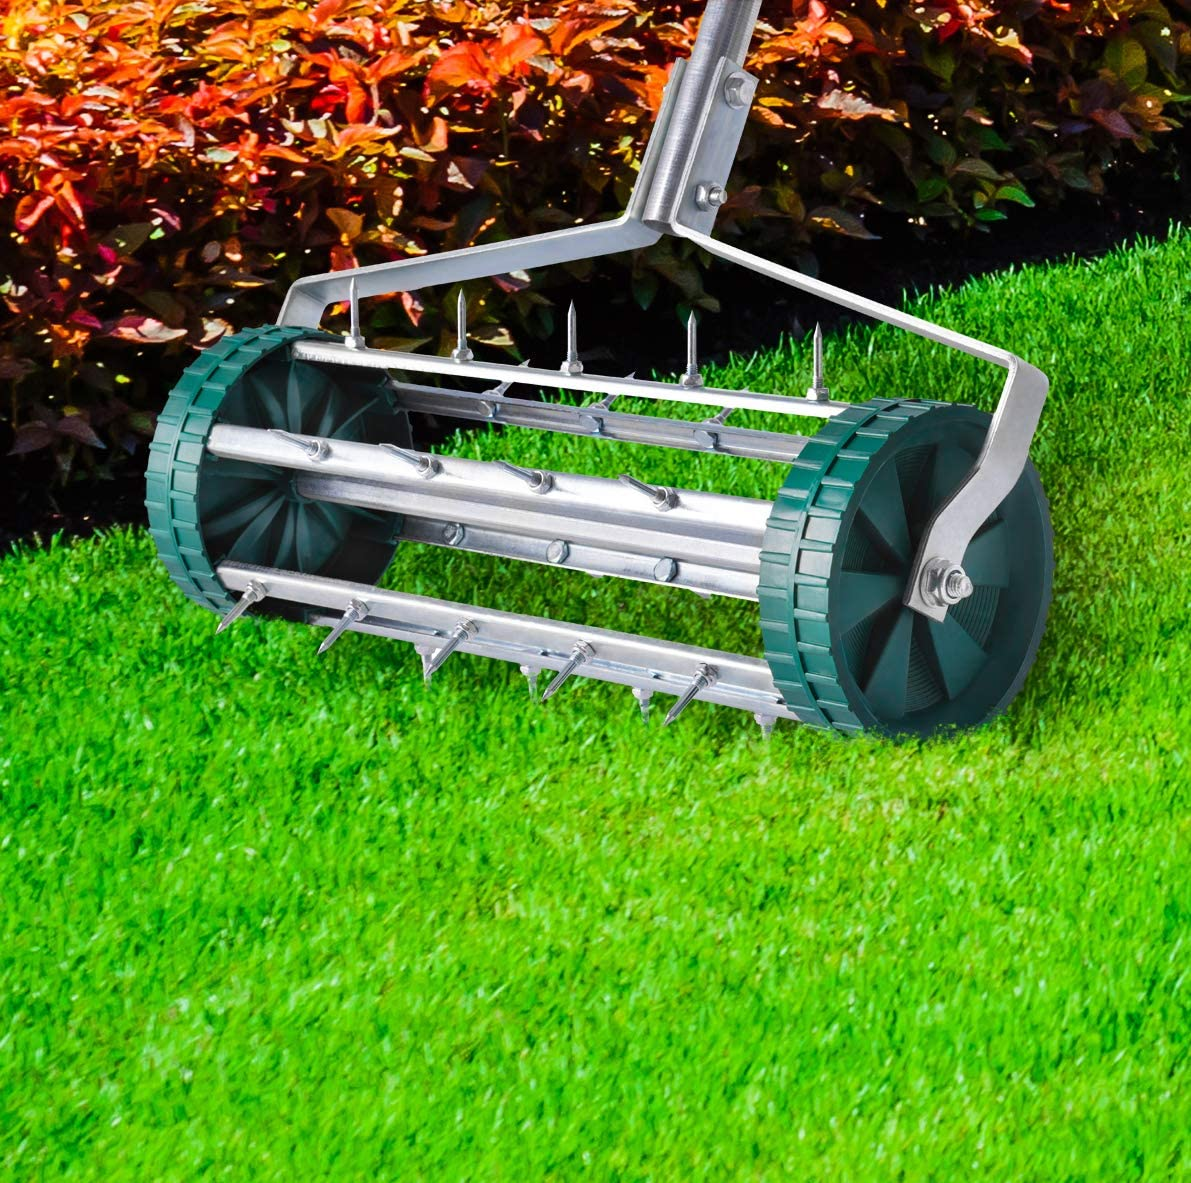 UPP Manual Rolling Lawn Aerator Sturdy /& Durable Garden Roller With Long Spikes and Manual Operation Scarifier Makes Your Lawn Healthier /& Greener